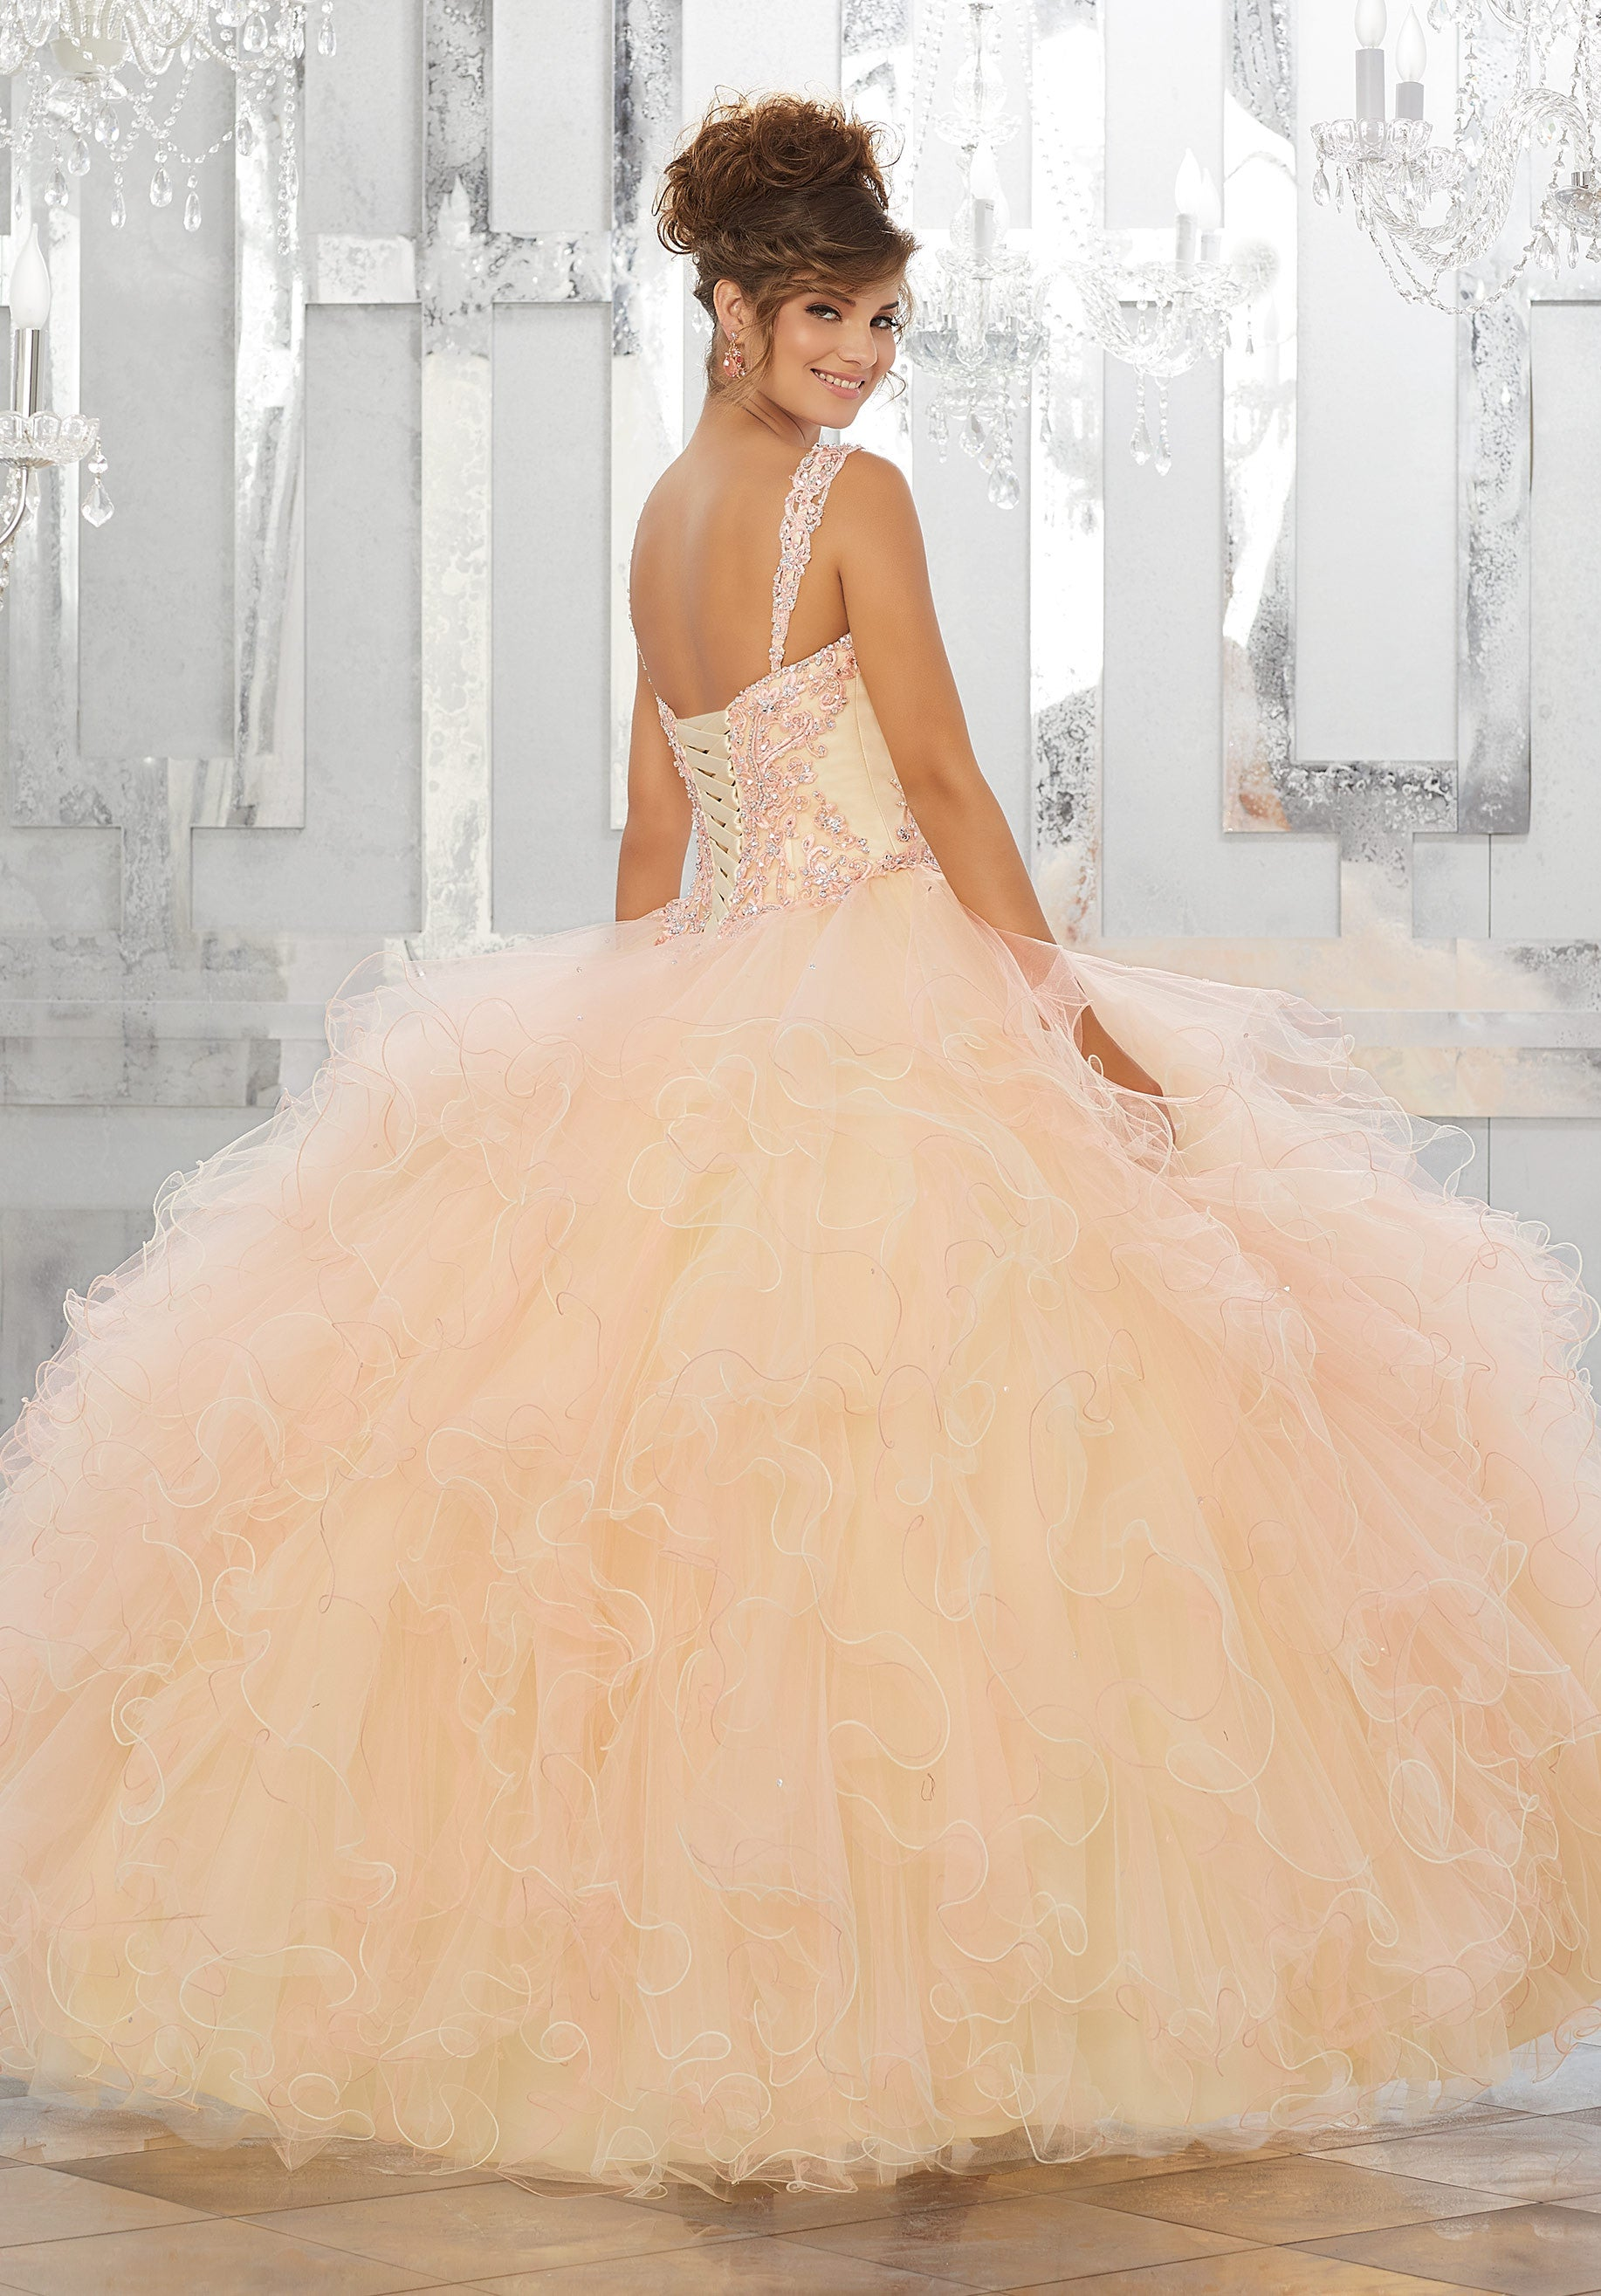 78045 Beaded and Embroidered Bodice on a Ruffled Tulle Ball Gown